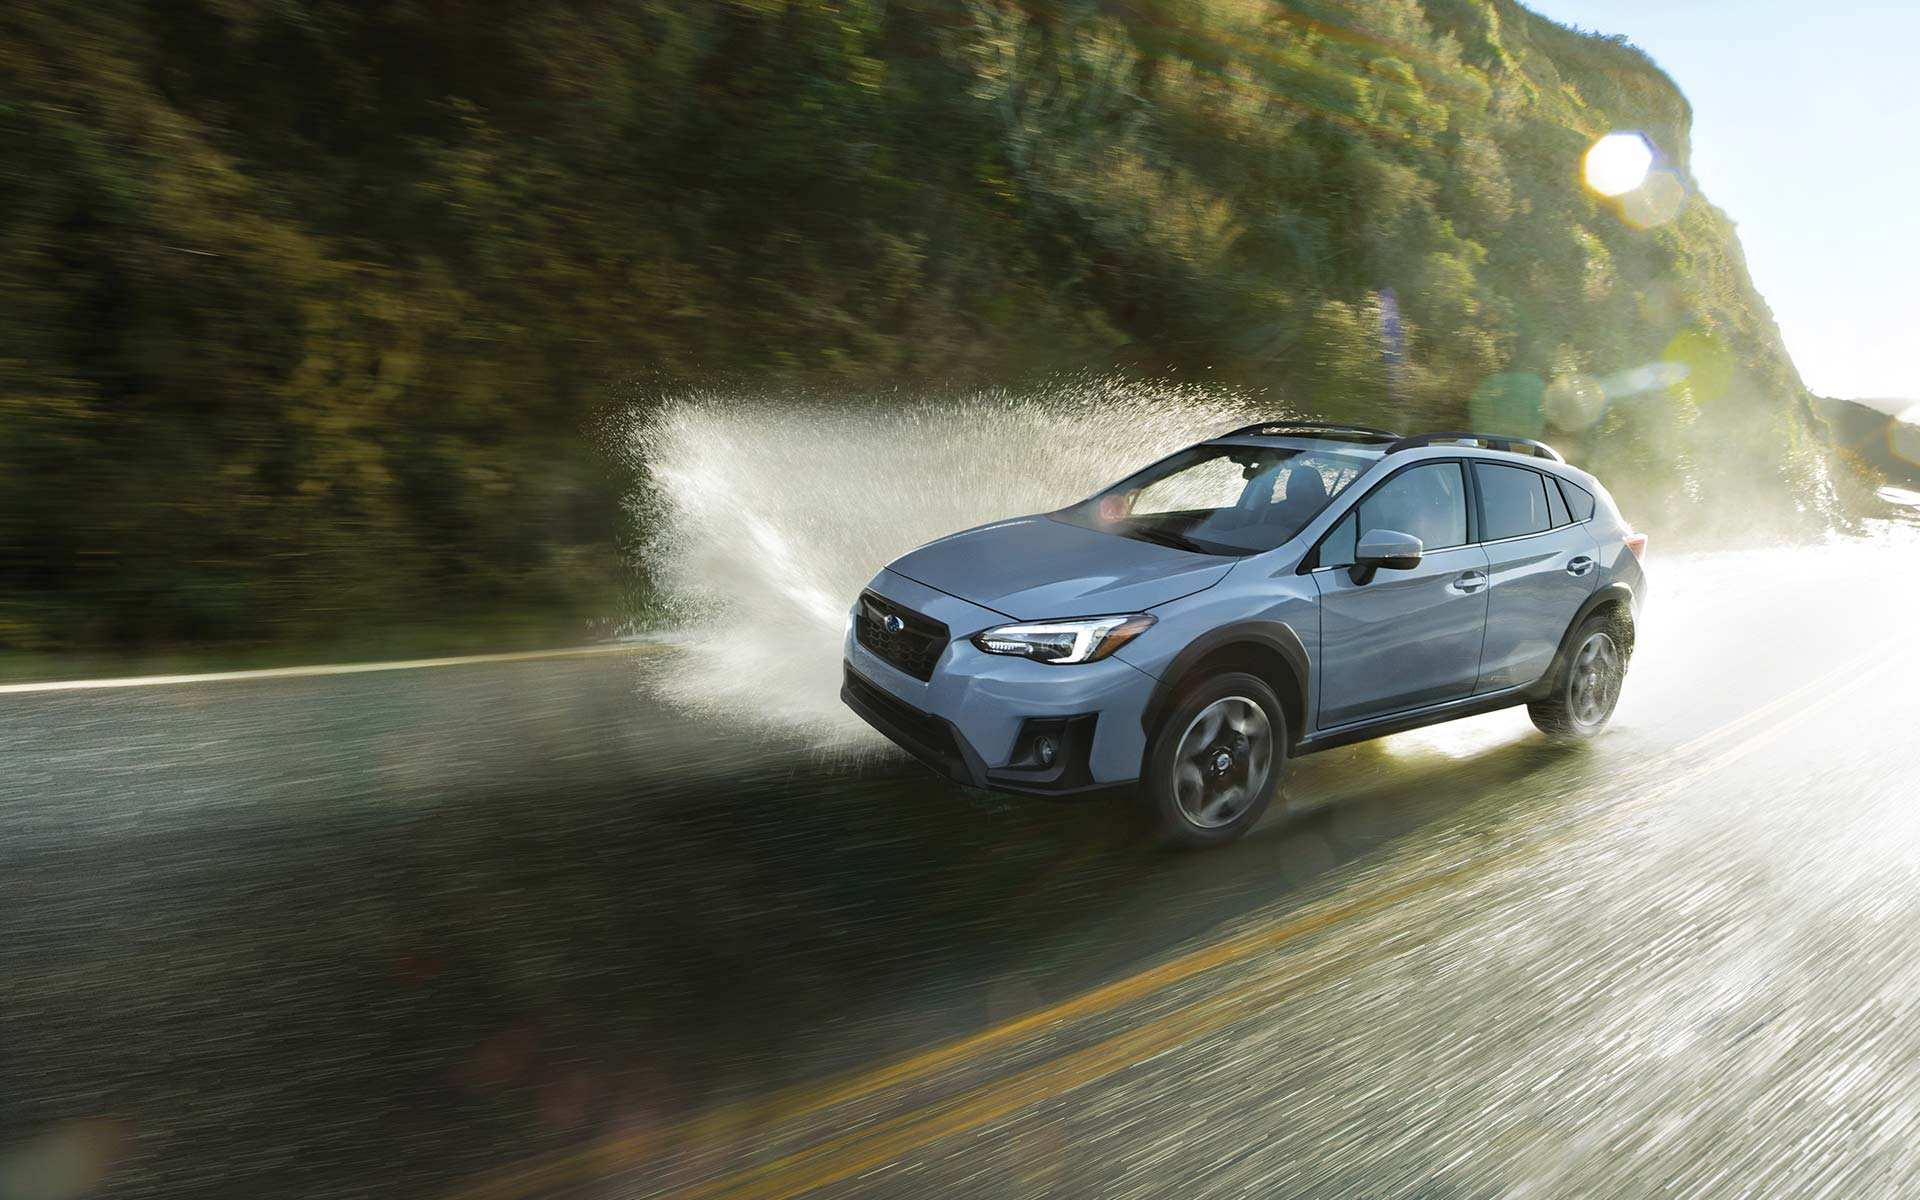 88 New 2019 Subaru Crosstrek Overview by 2019 Subaru Crosstrek